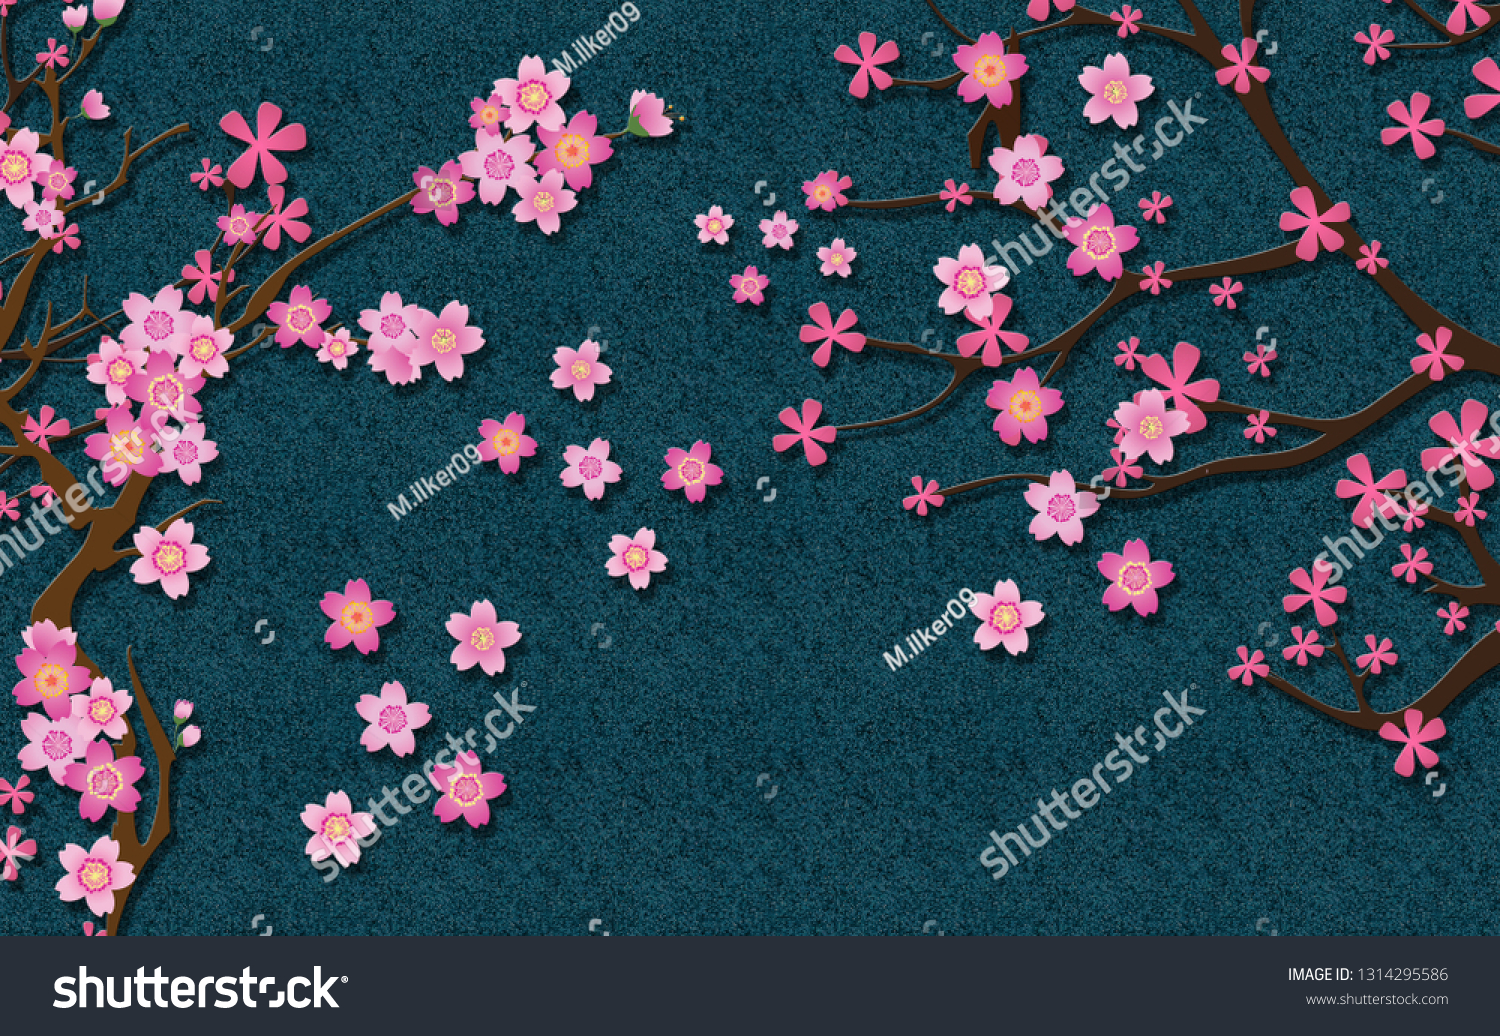 3d Wallpaper Design Blossom Flowers Glitter Stock Illustration